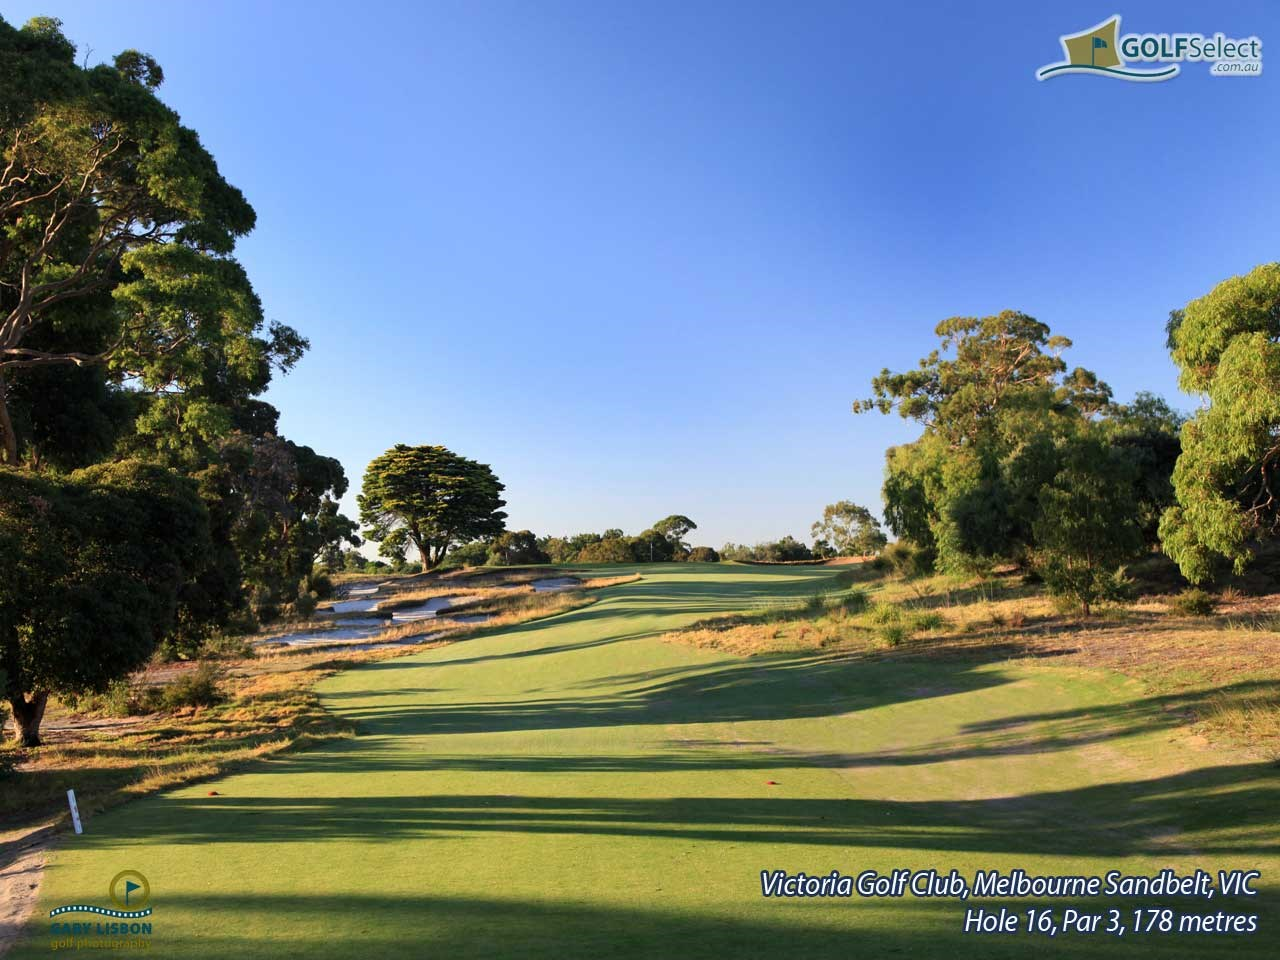 Victoria Golf Club Hole 16, Par 3, 178 metres